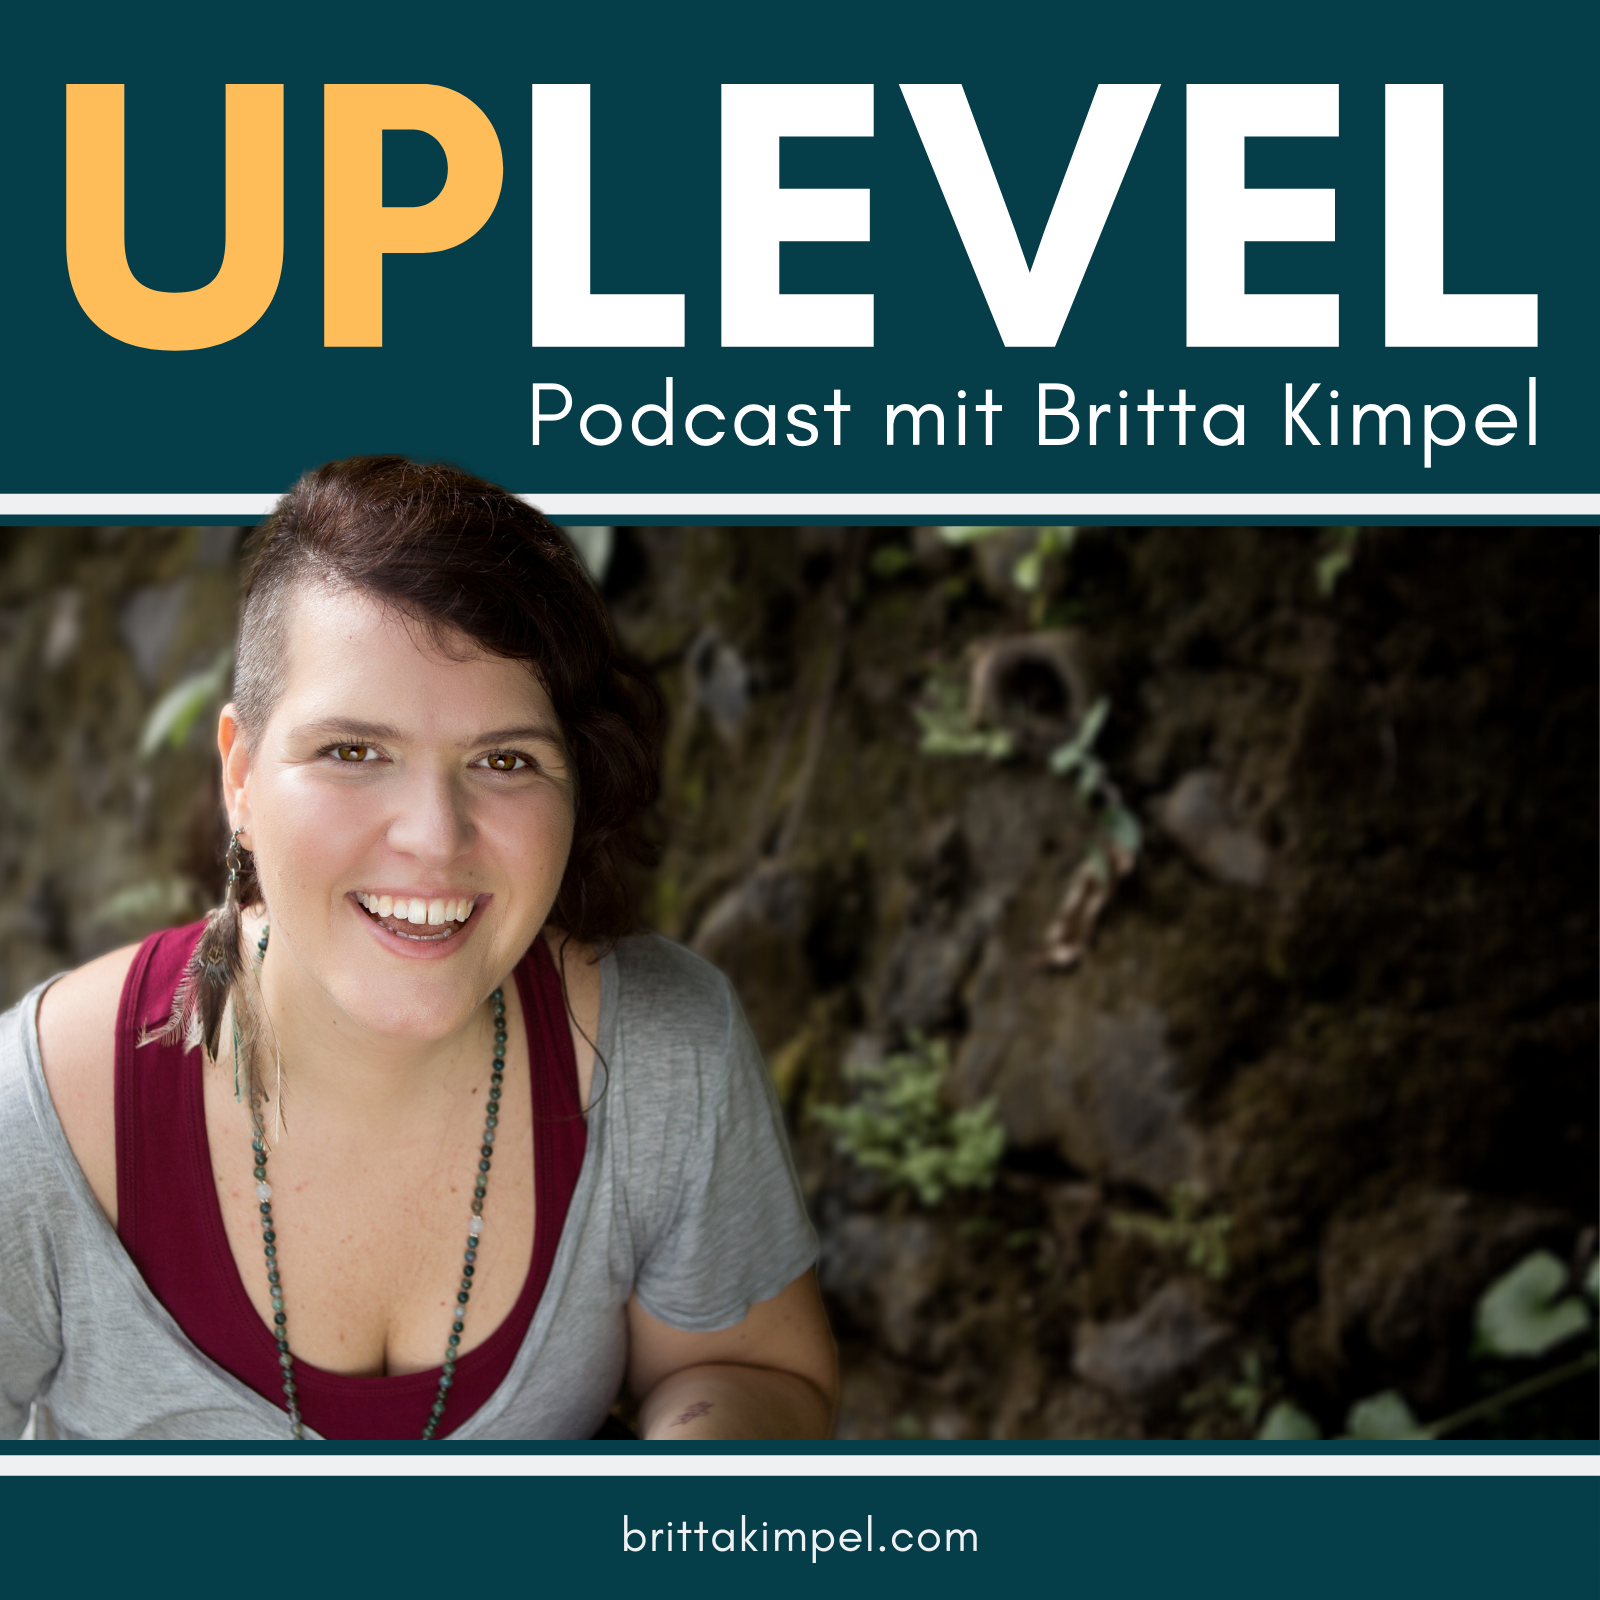 UPLEVEL Podcast